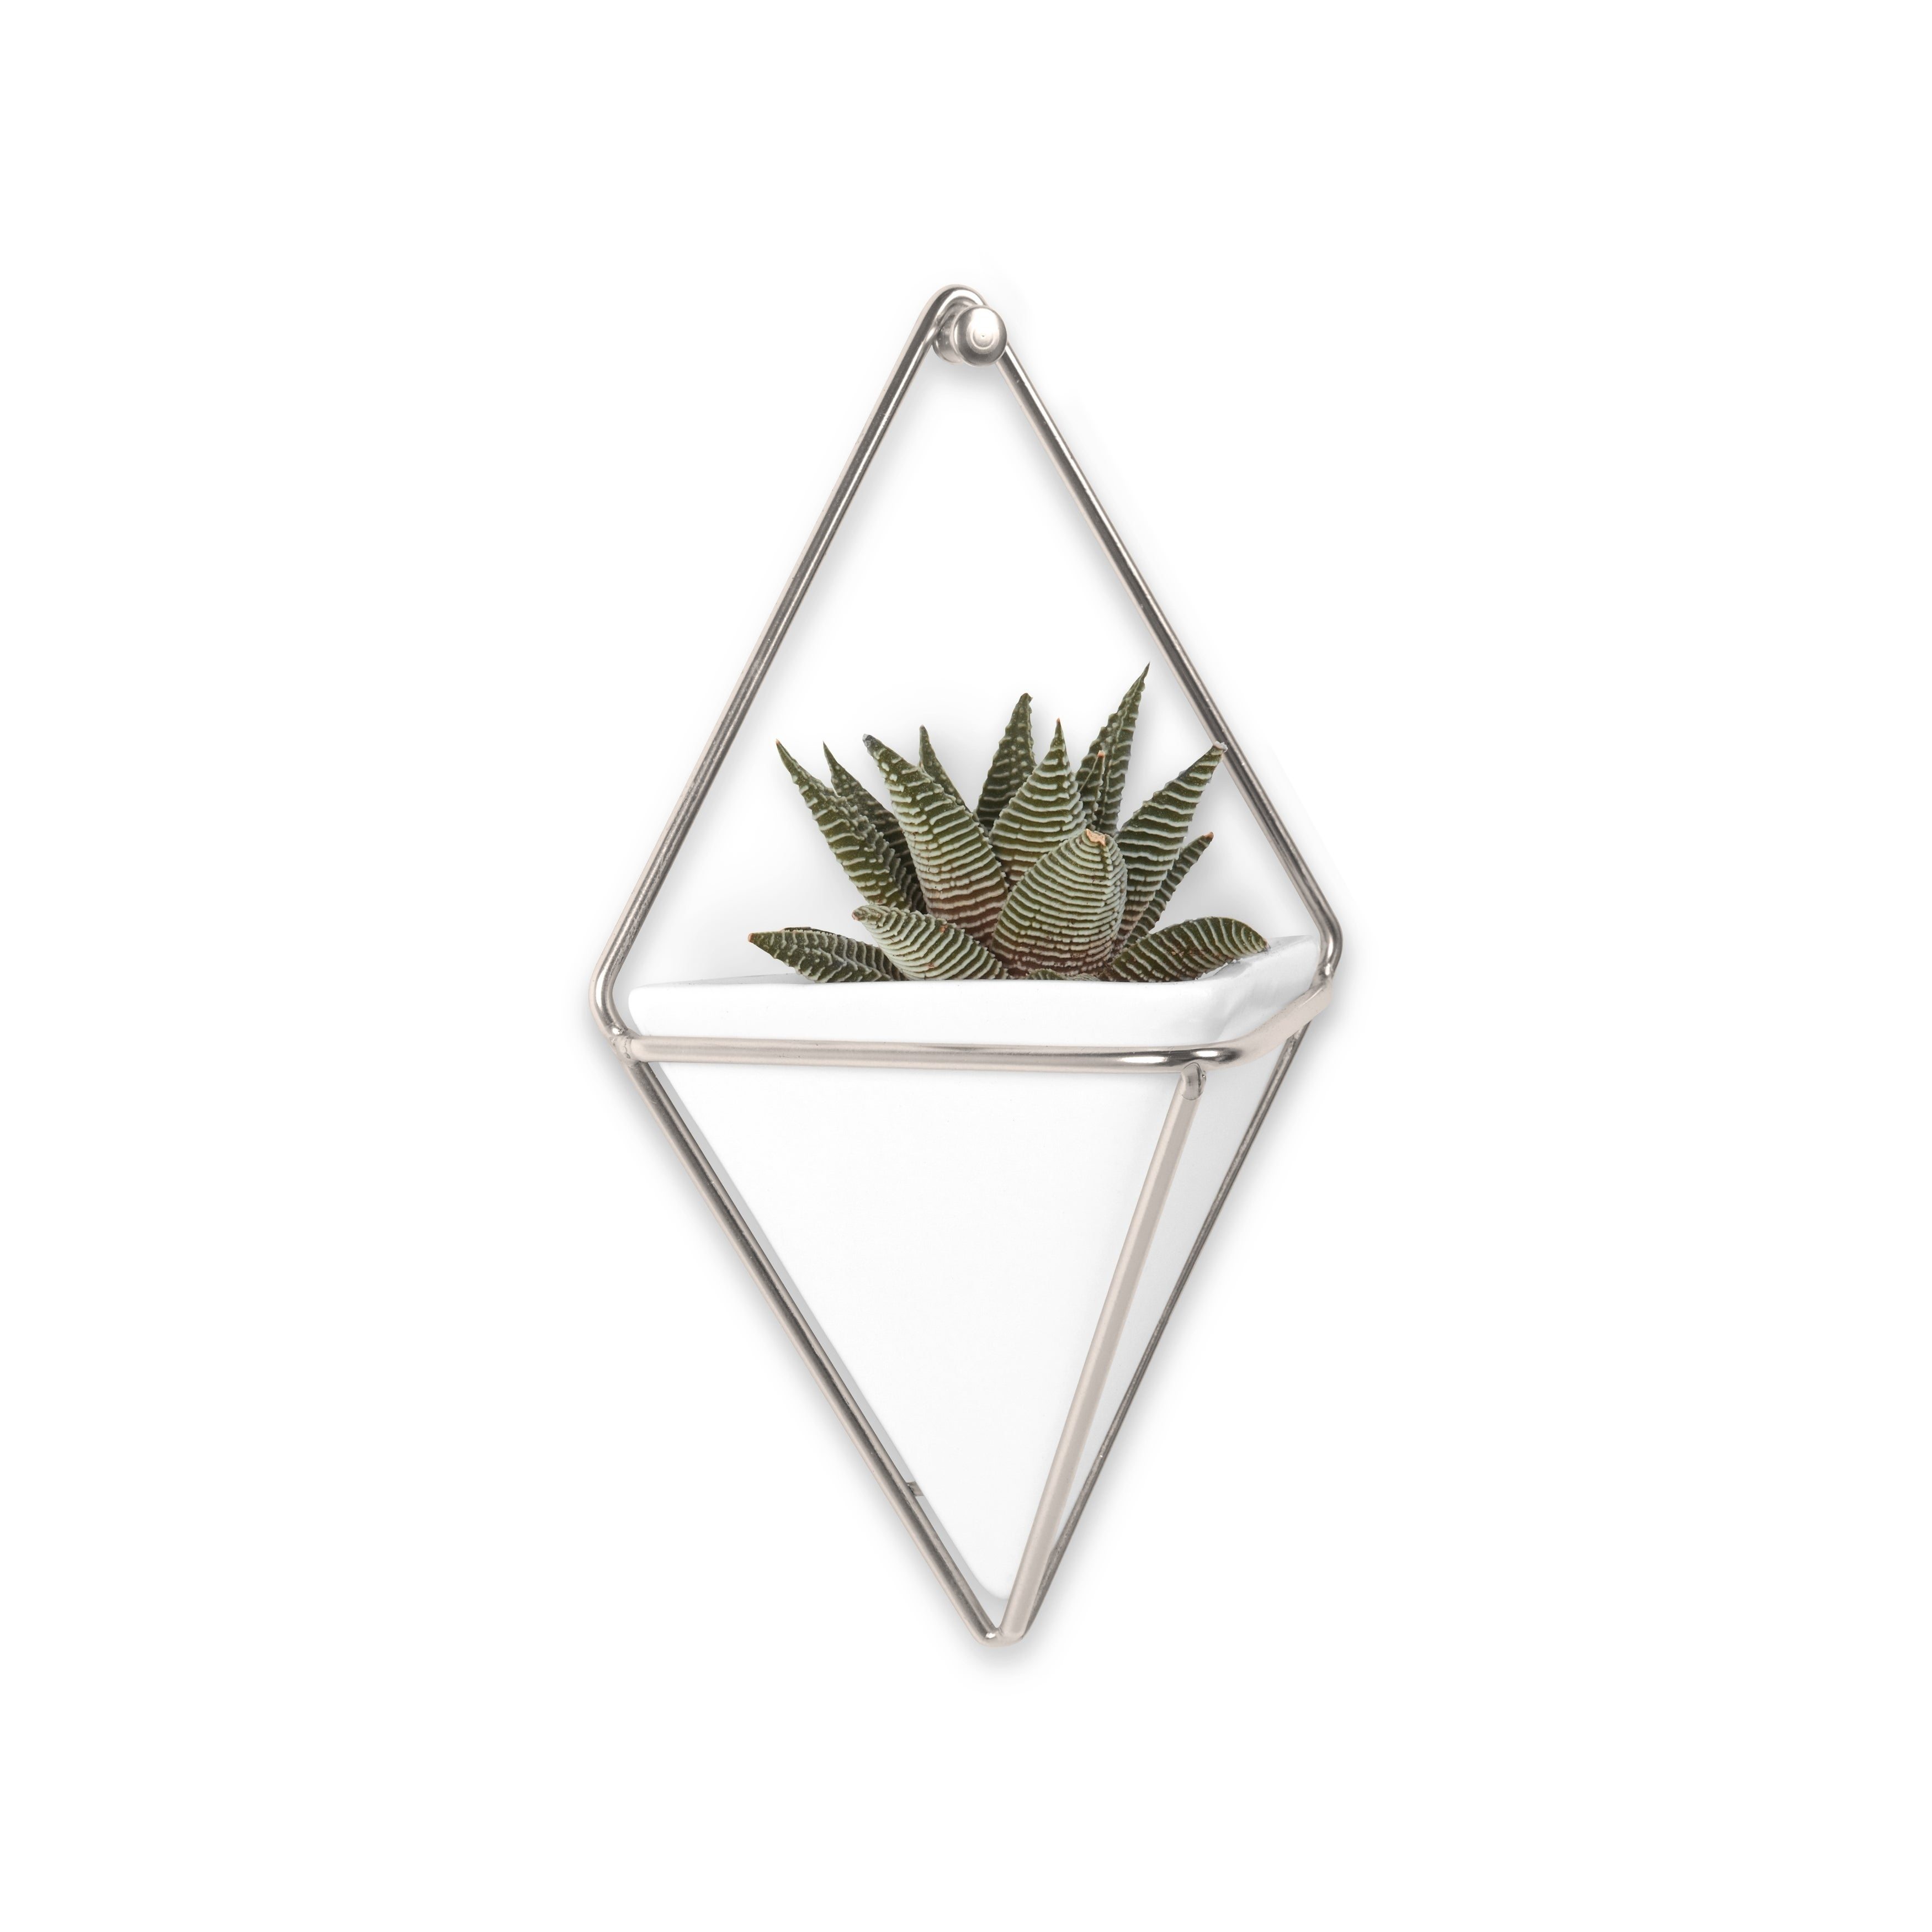 Umbra Trigg Hanging Planter & Wall Decor (Set Of 2) regarding 2 Piece Trigg Wall Decor Sets (Set Of 2) (Image 24 of 30)